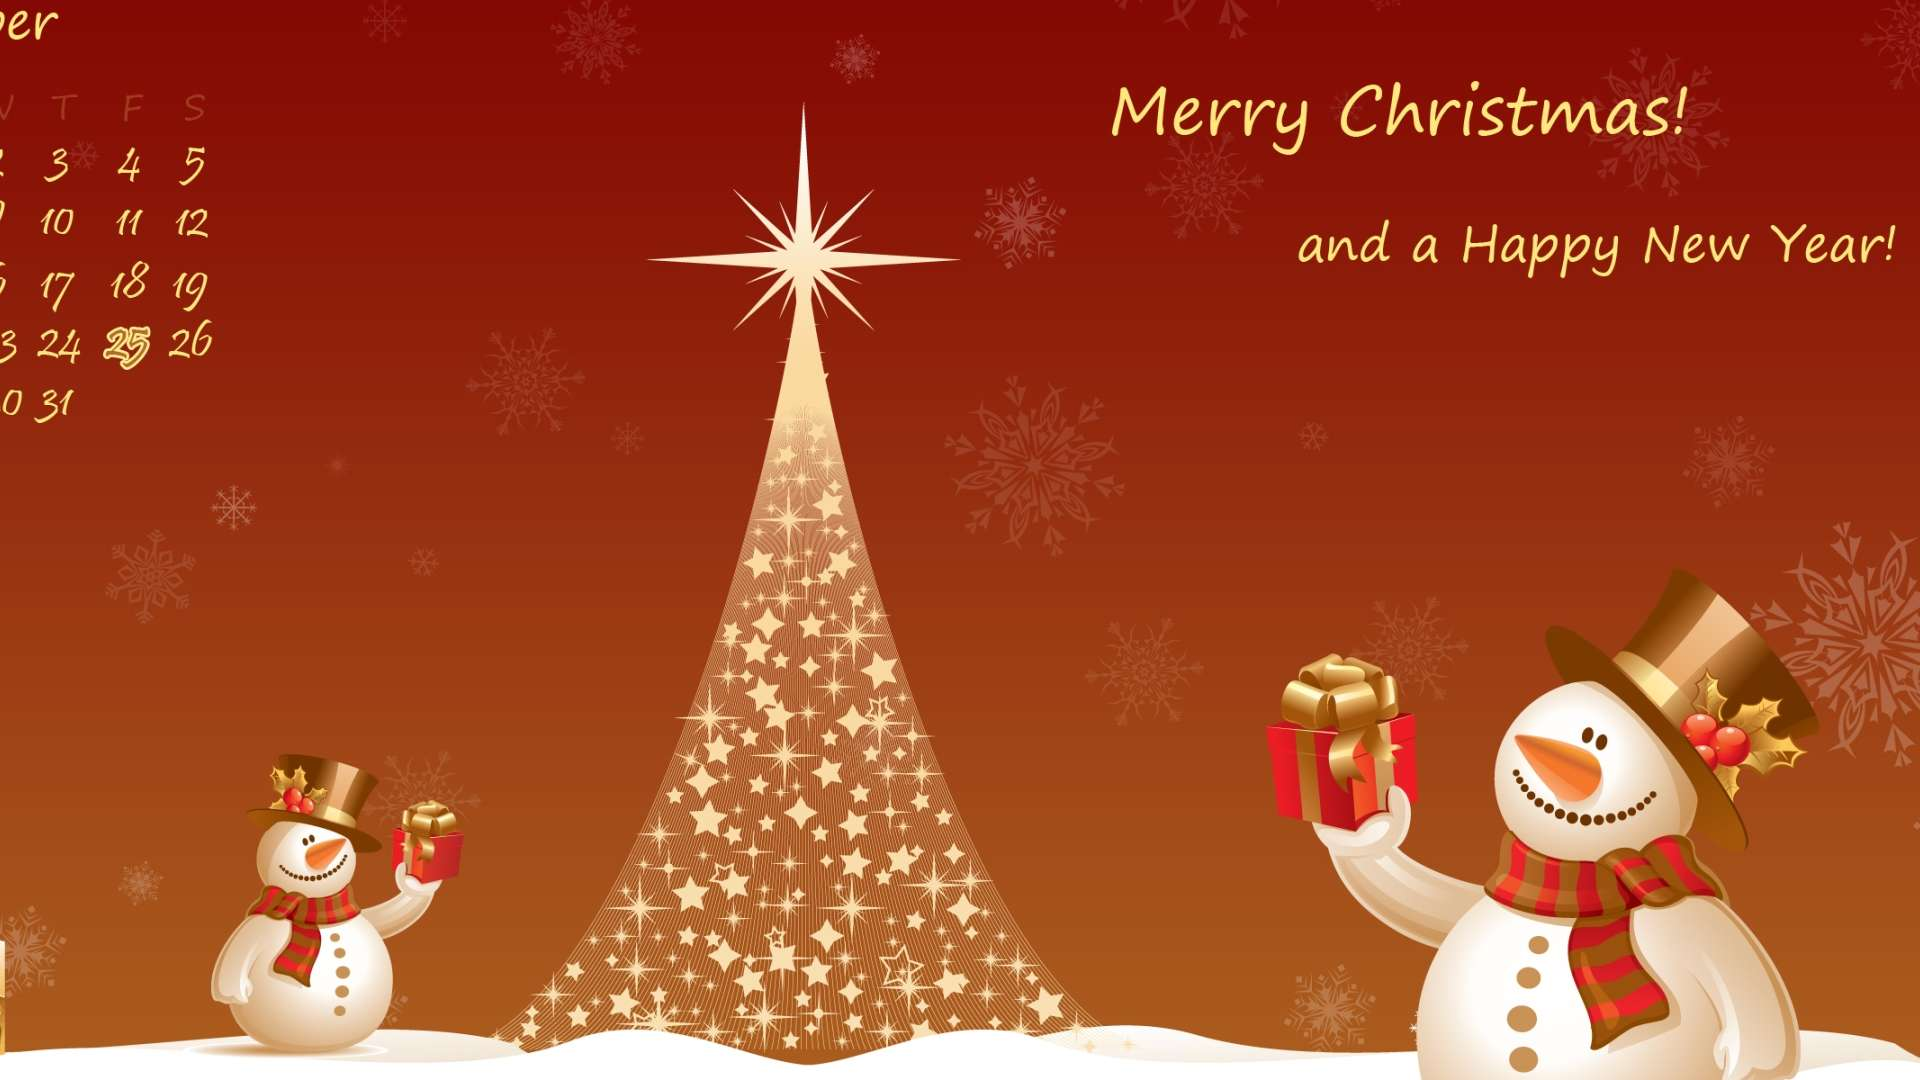 1920x1080-christmas-animated-desktop-wallpaper-253796717-1.jpg